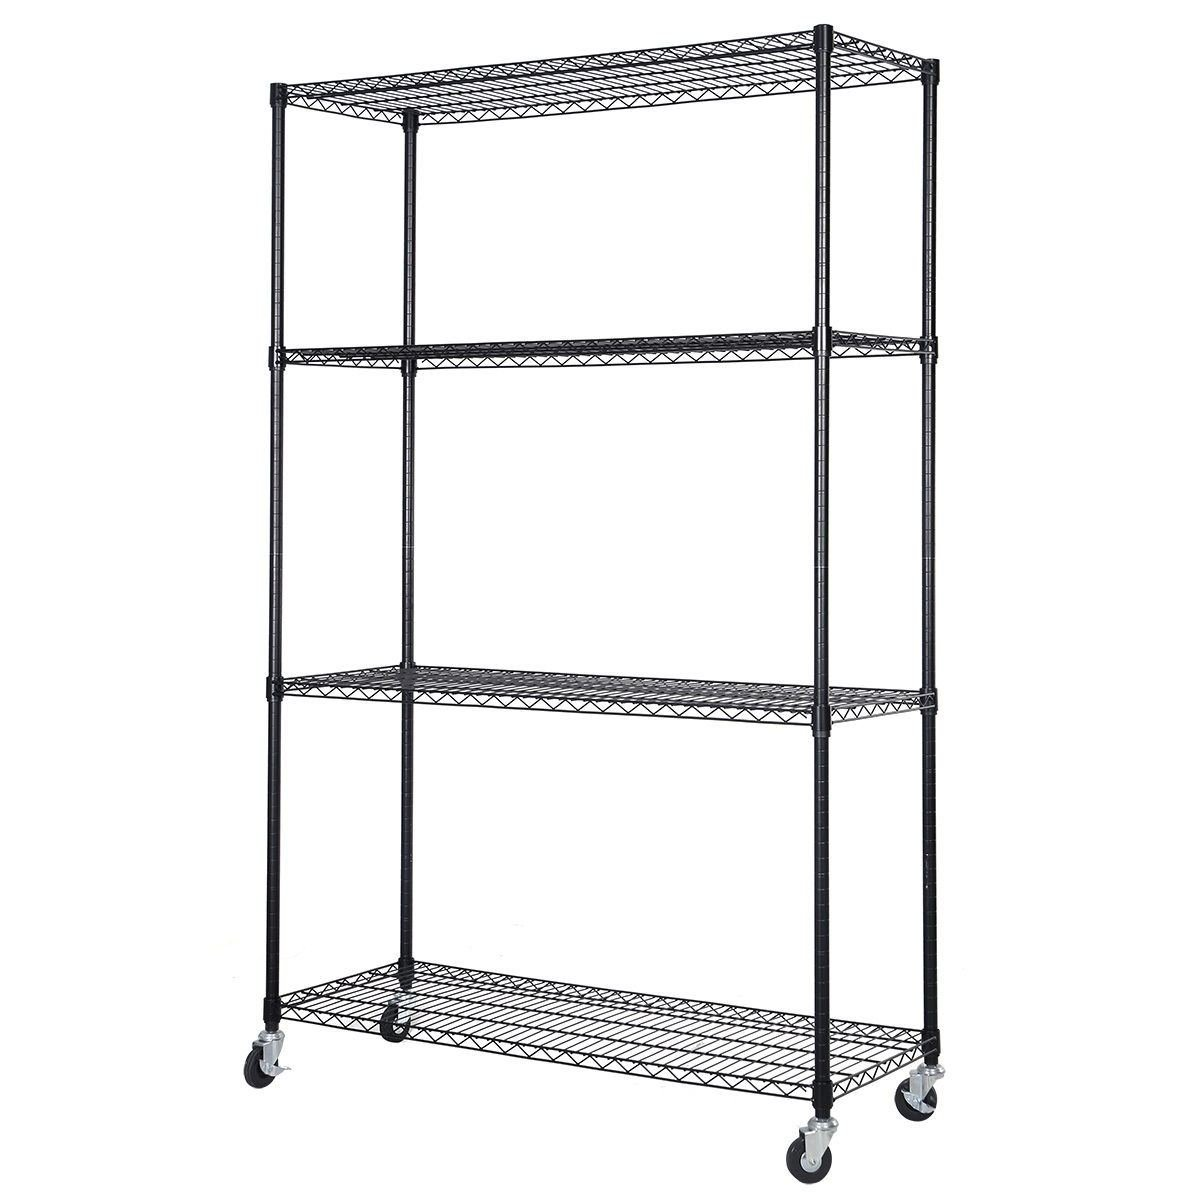 MasterPanel -48'' x 18'' x 72'' Adjustable 4 Tier Shelf Steel Wire Metal Shelving Rack Storage #TP3320